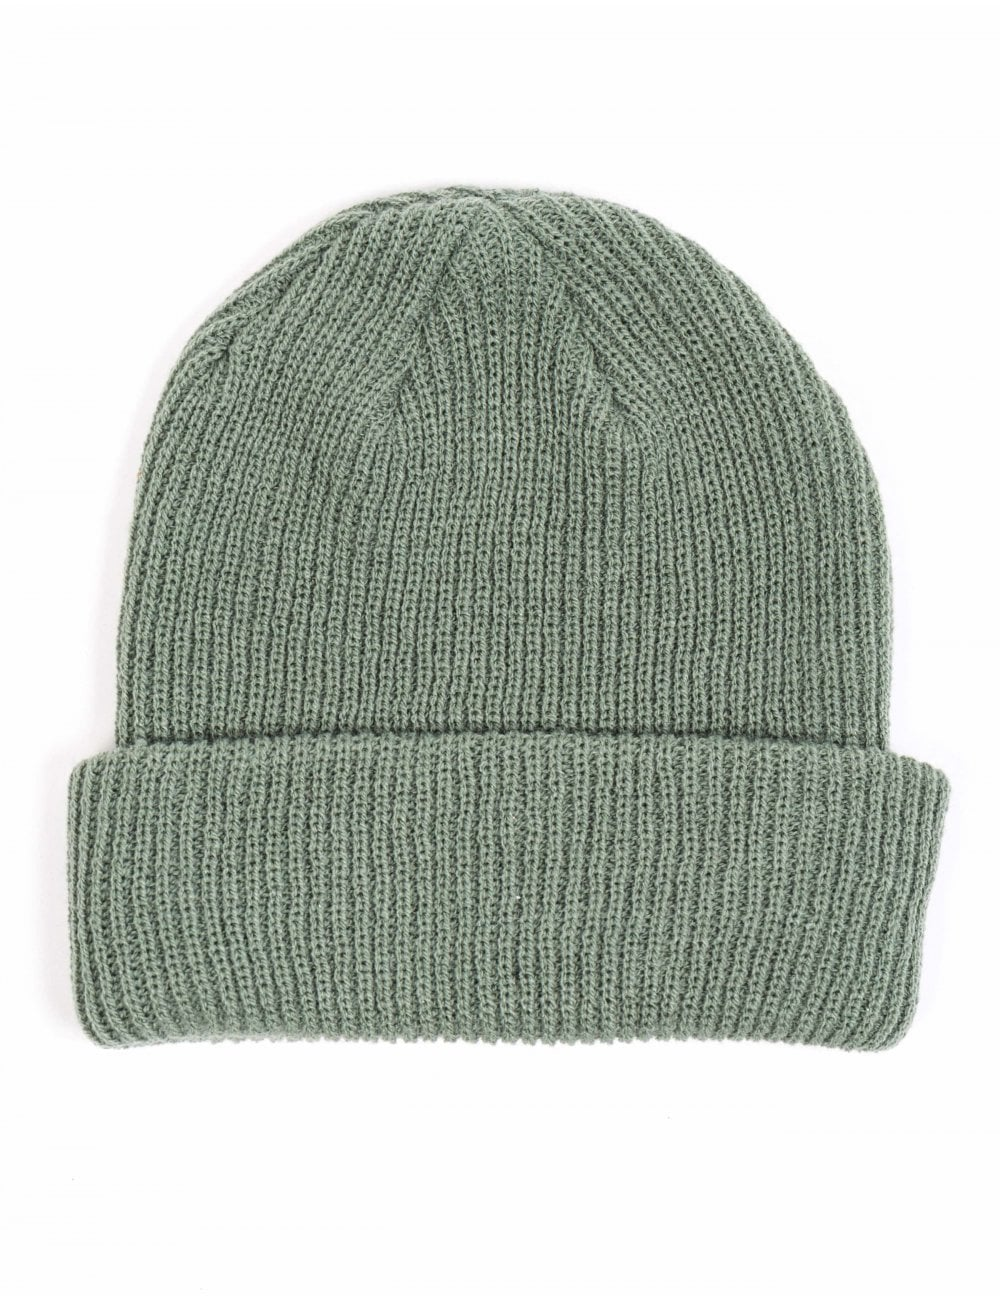 f093471fc4e Nike SB Fisherman Beanie Hat - Clay Green - Accessories from Fat ...